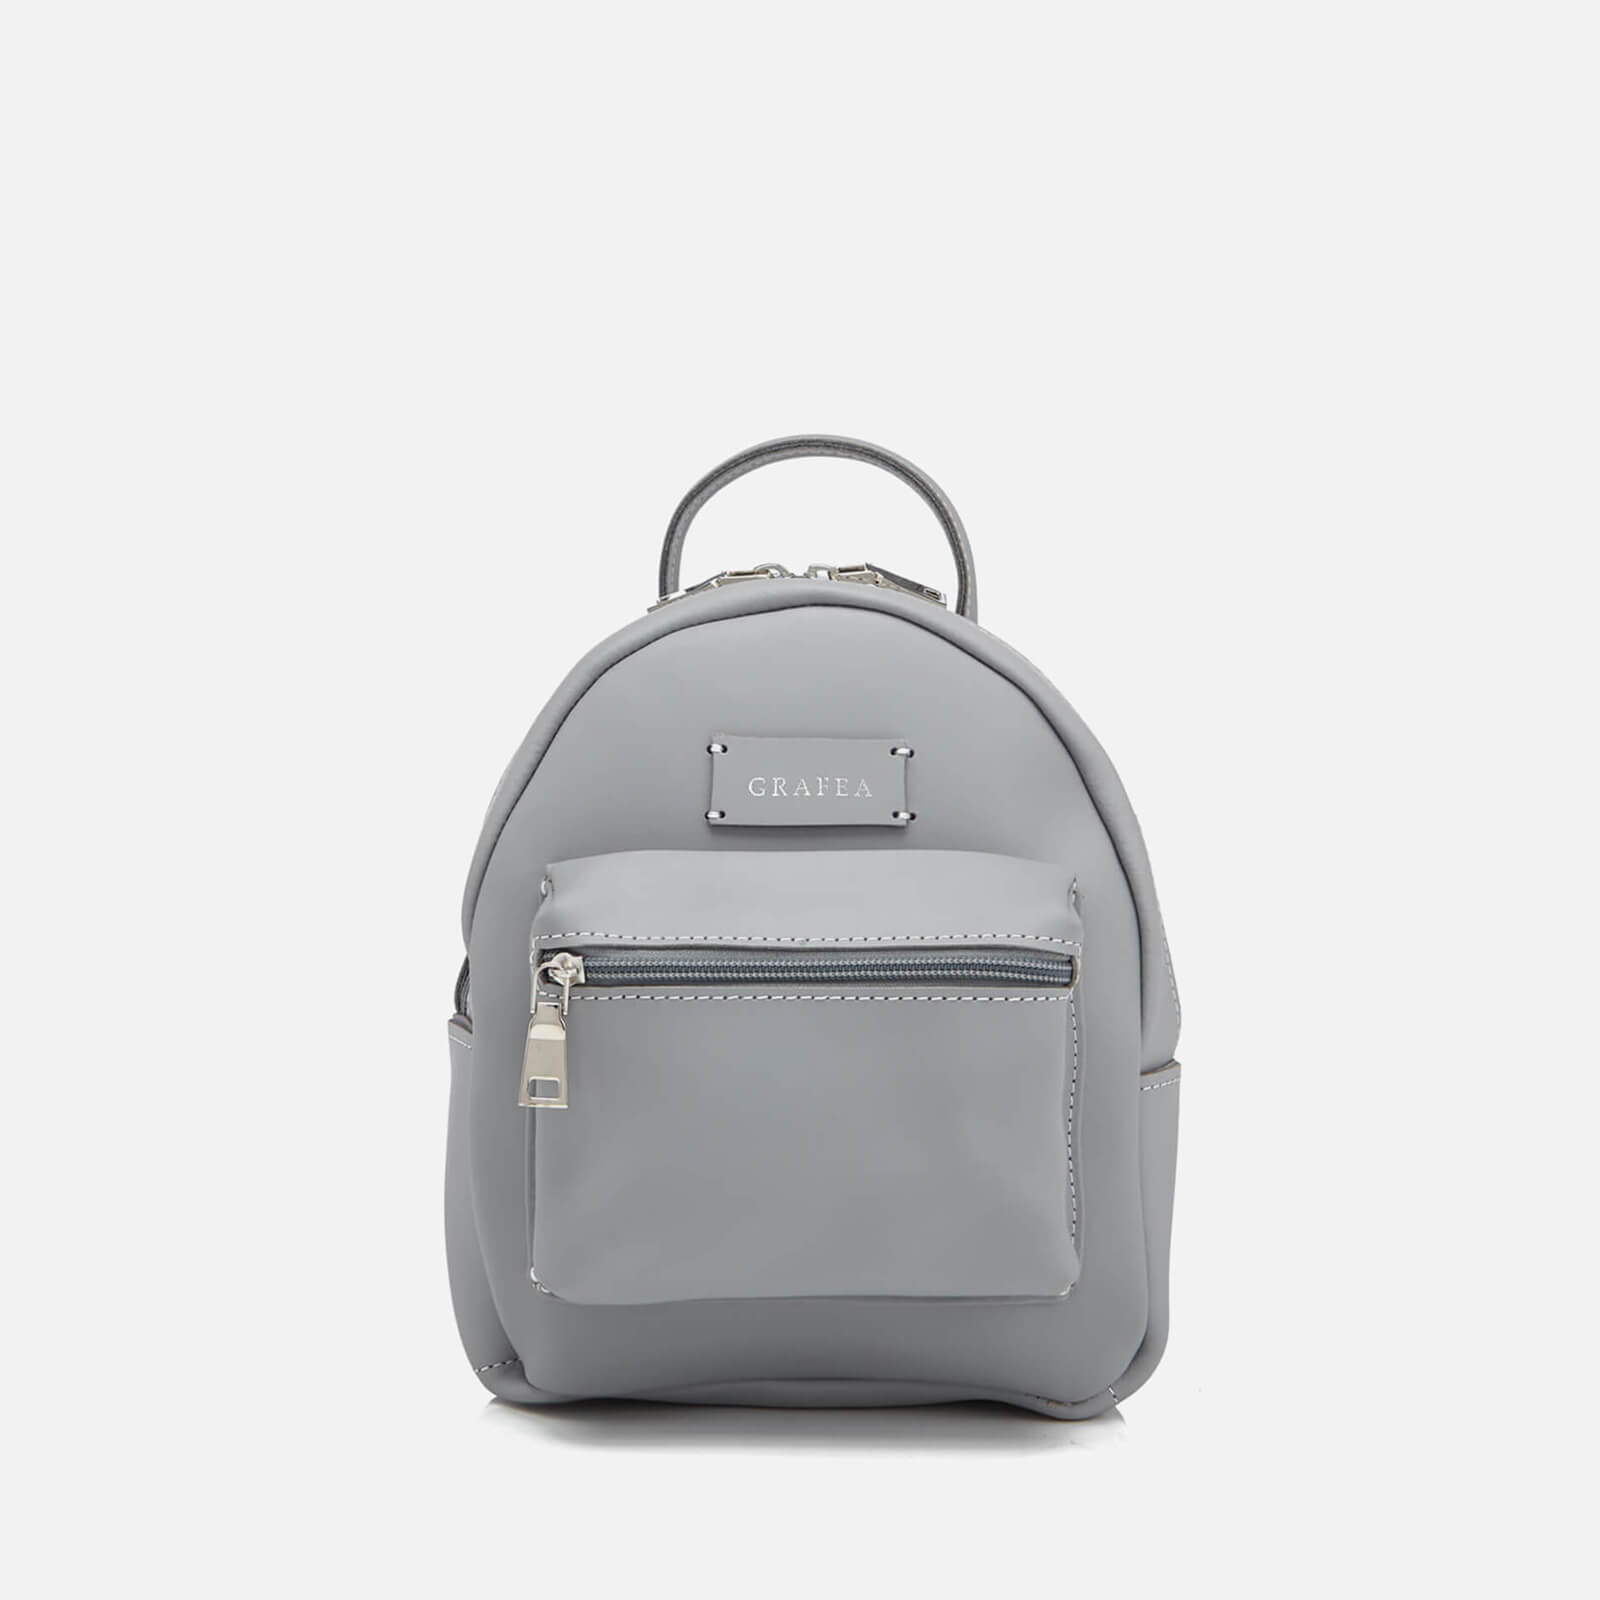 Grafea Zippy Small Backpack - Grey - Free UK Delivery over £50 86e645fff96b8